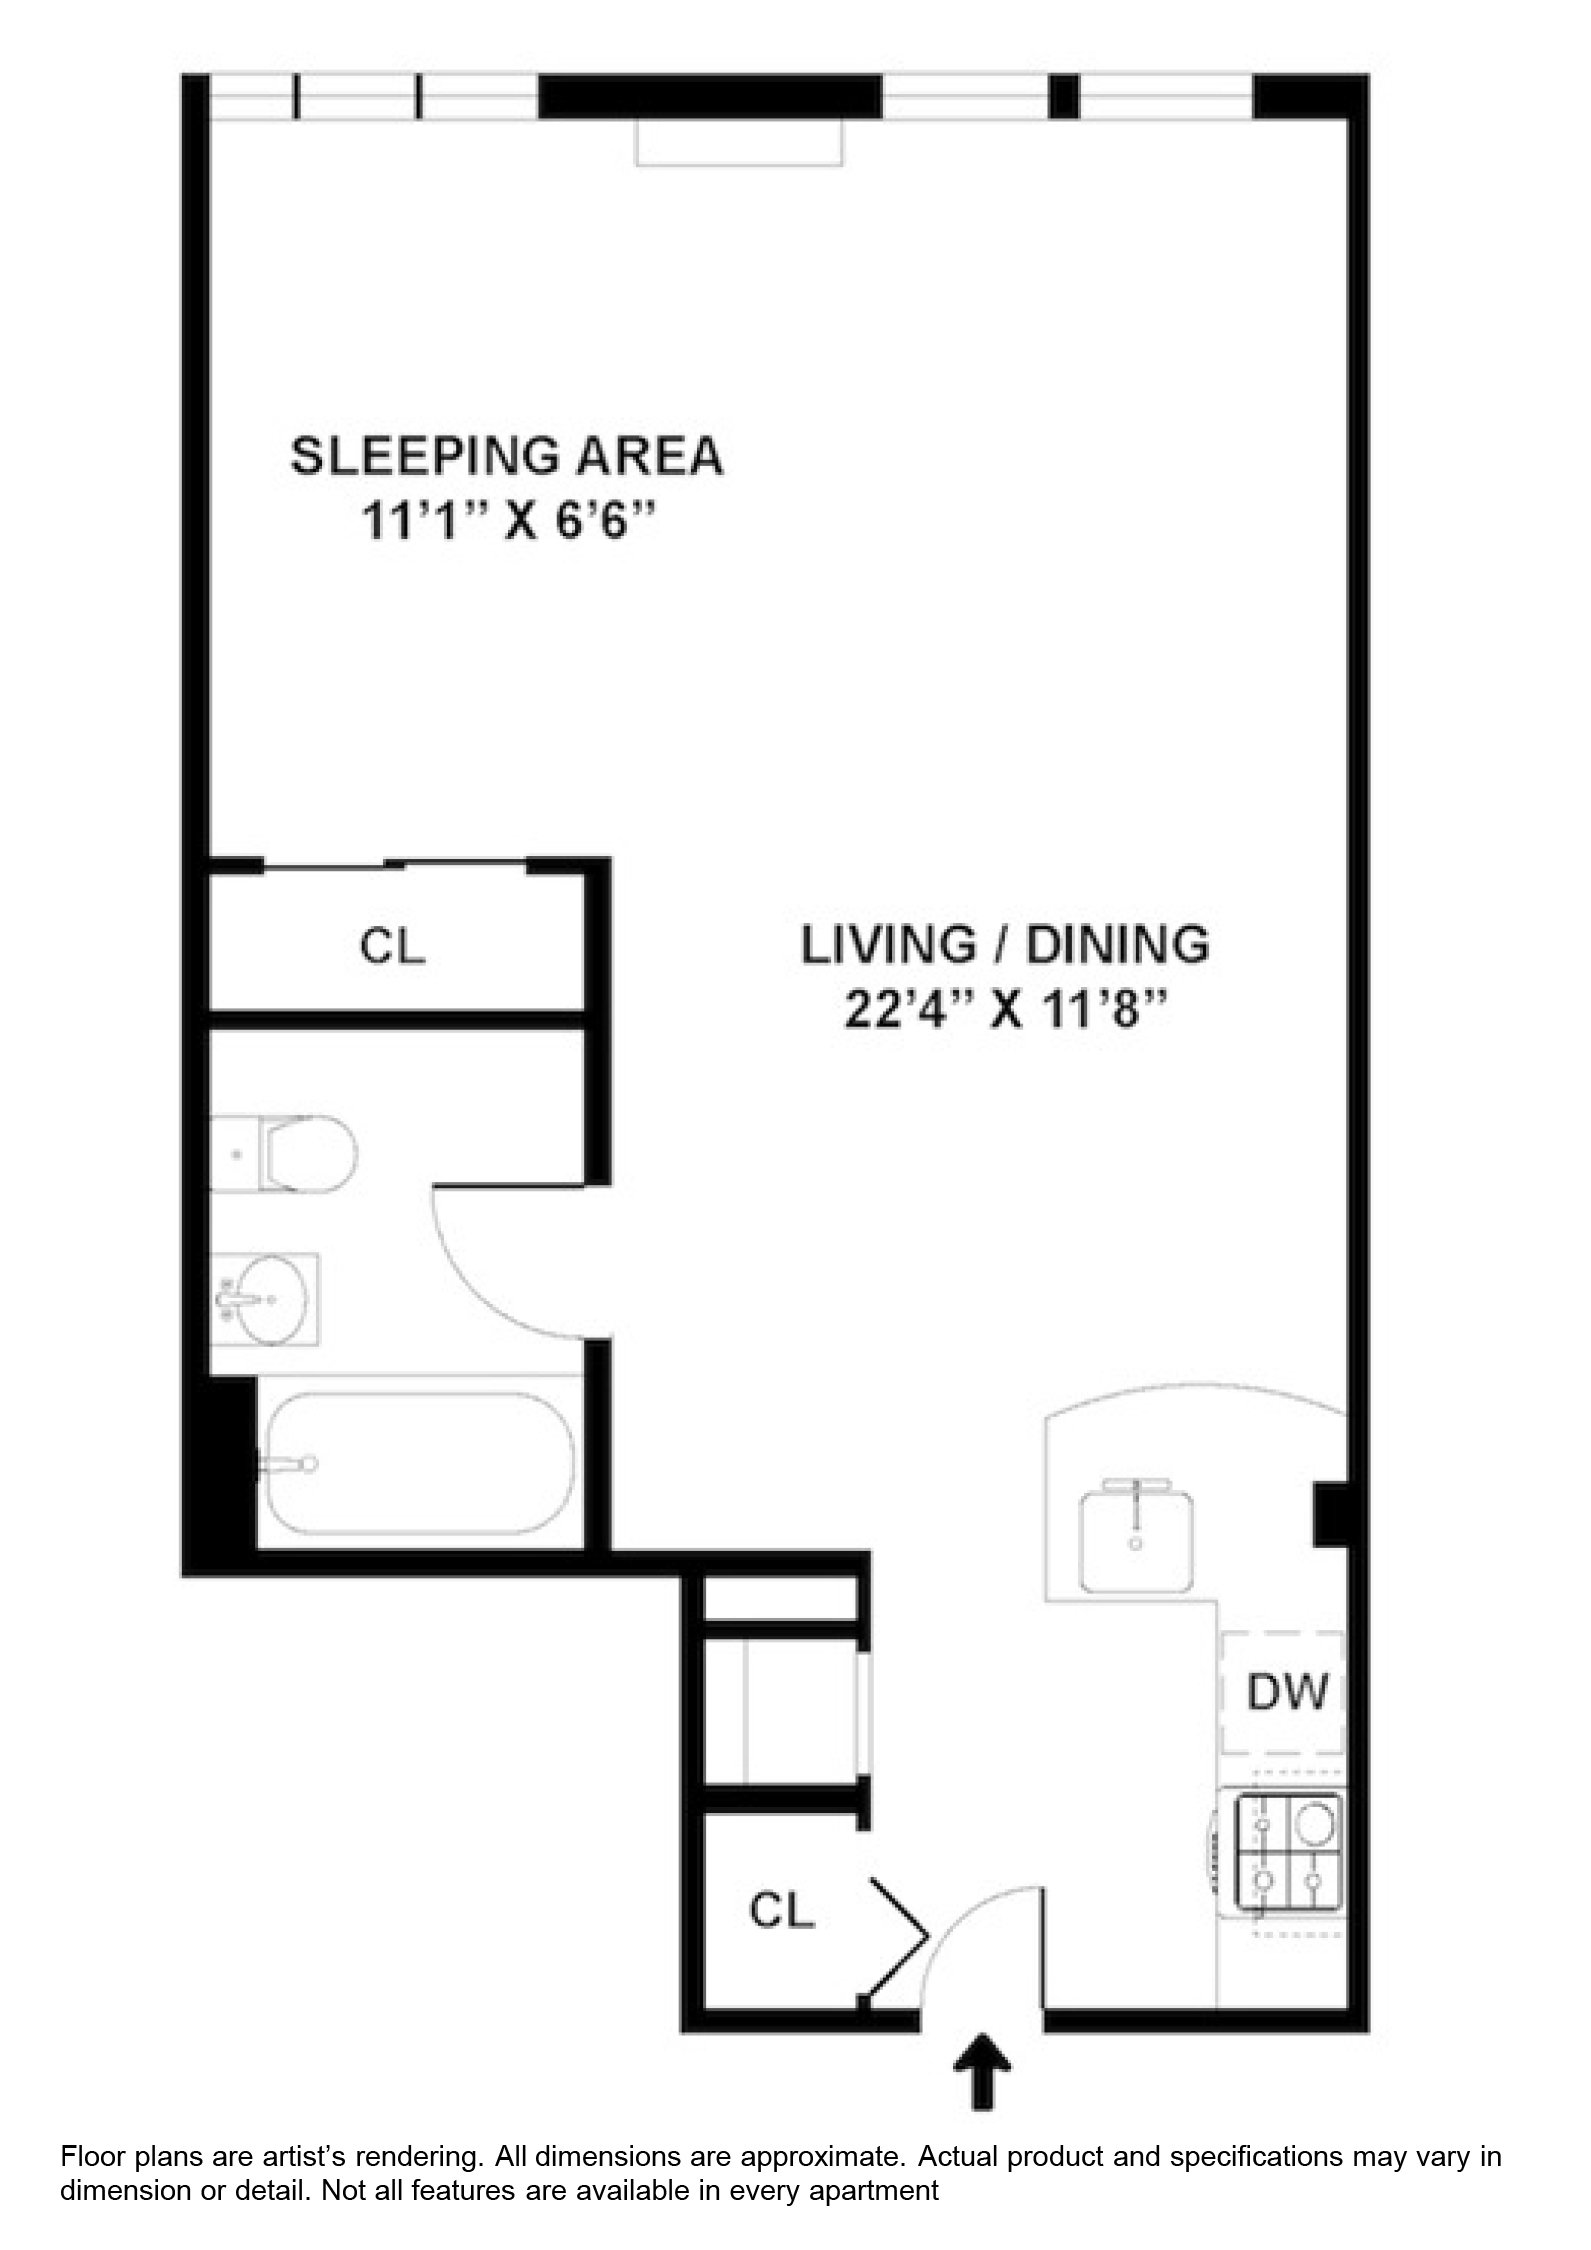 Studio Apartment Floor Plans new york studio apartments floor plan - home design ideas